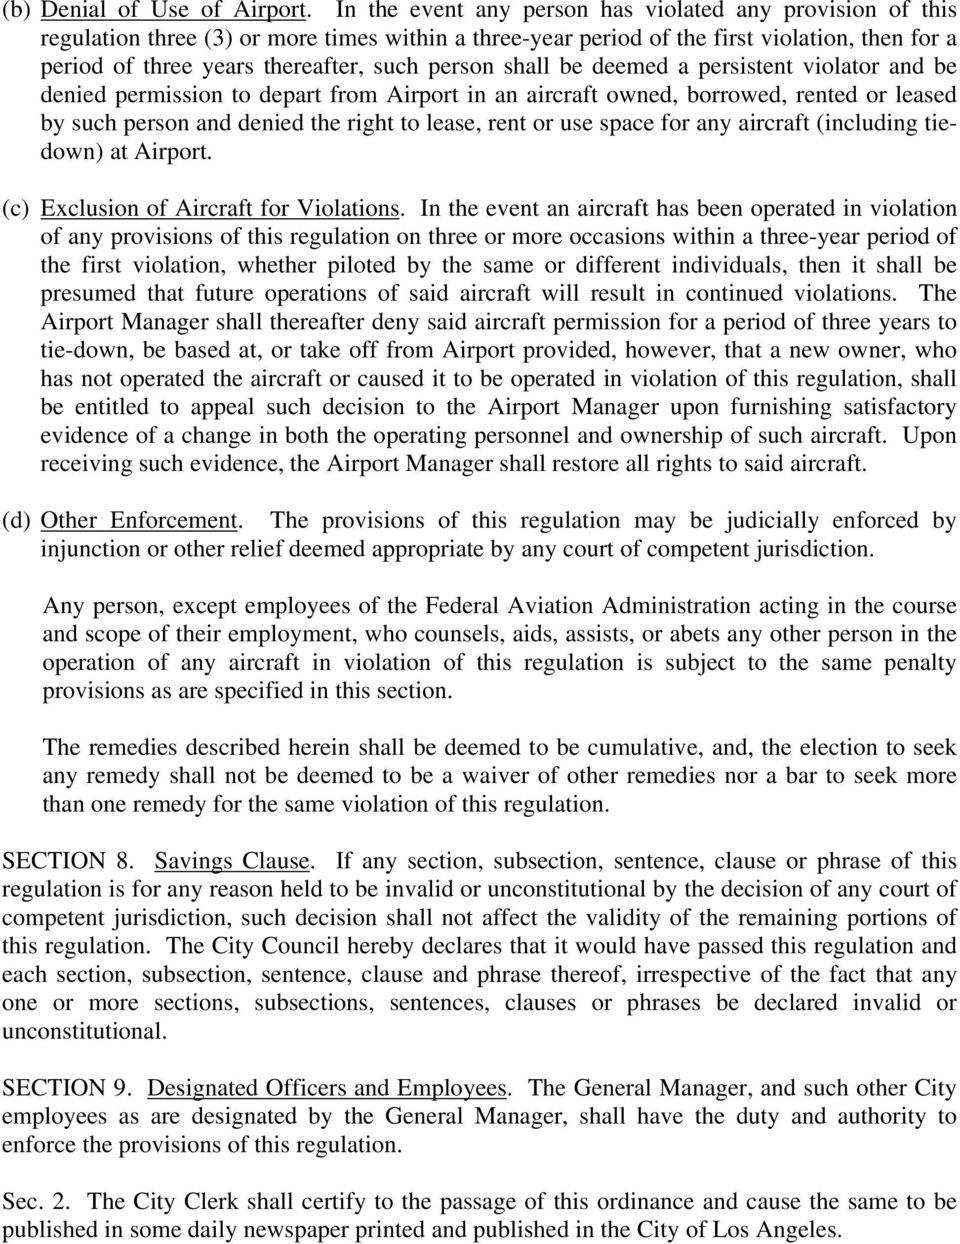 person shall be deemed a persistent violator and be denied permission to depart from Airport in an aircraft owned, borrowed, rented or leased by such person and denied the right to lease, rent or use